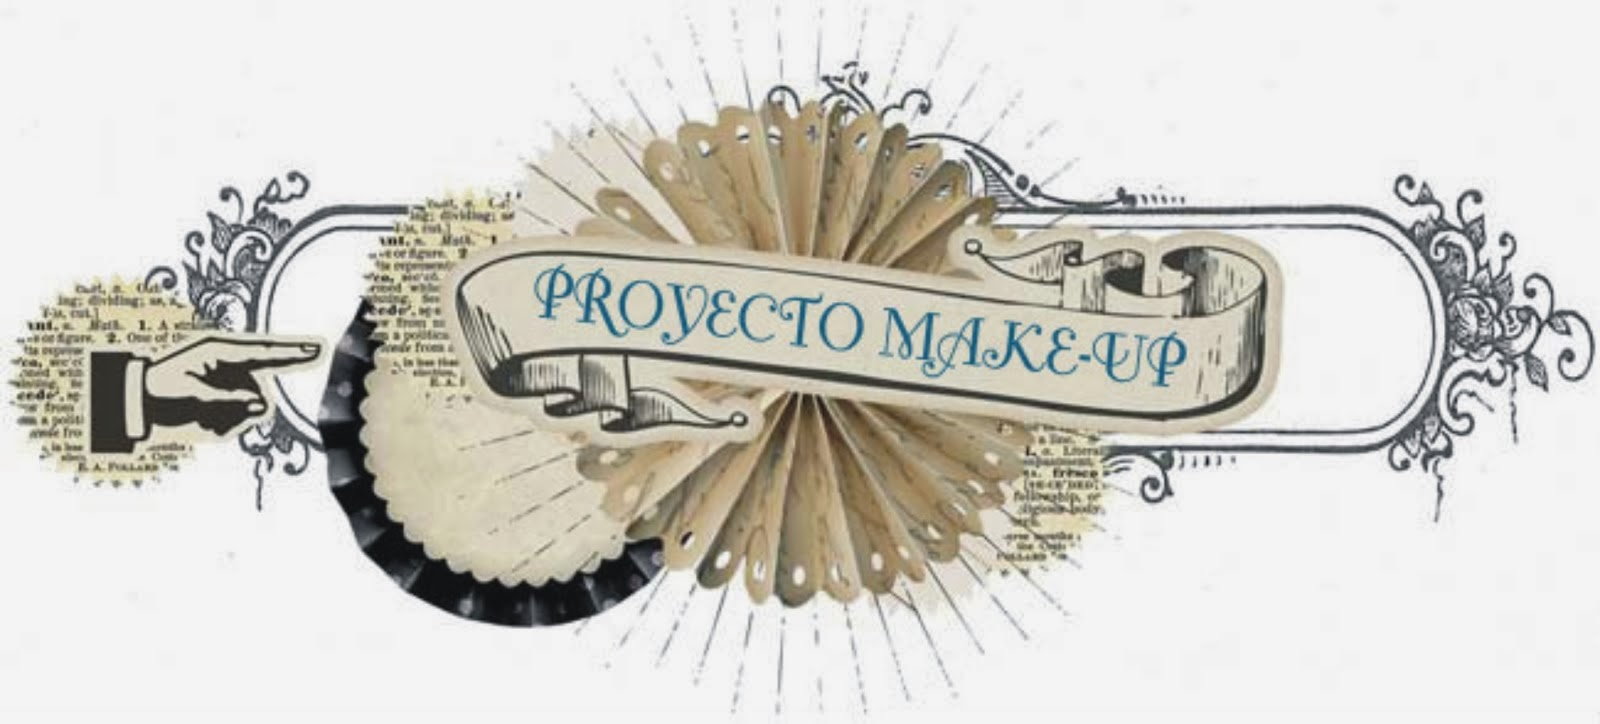 Proyecto Make-up